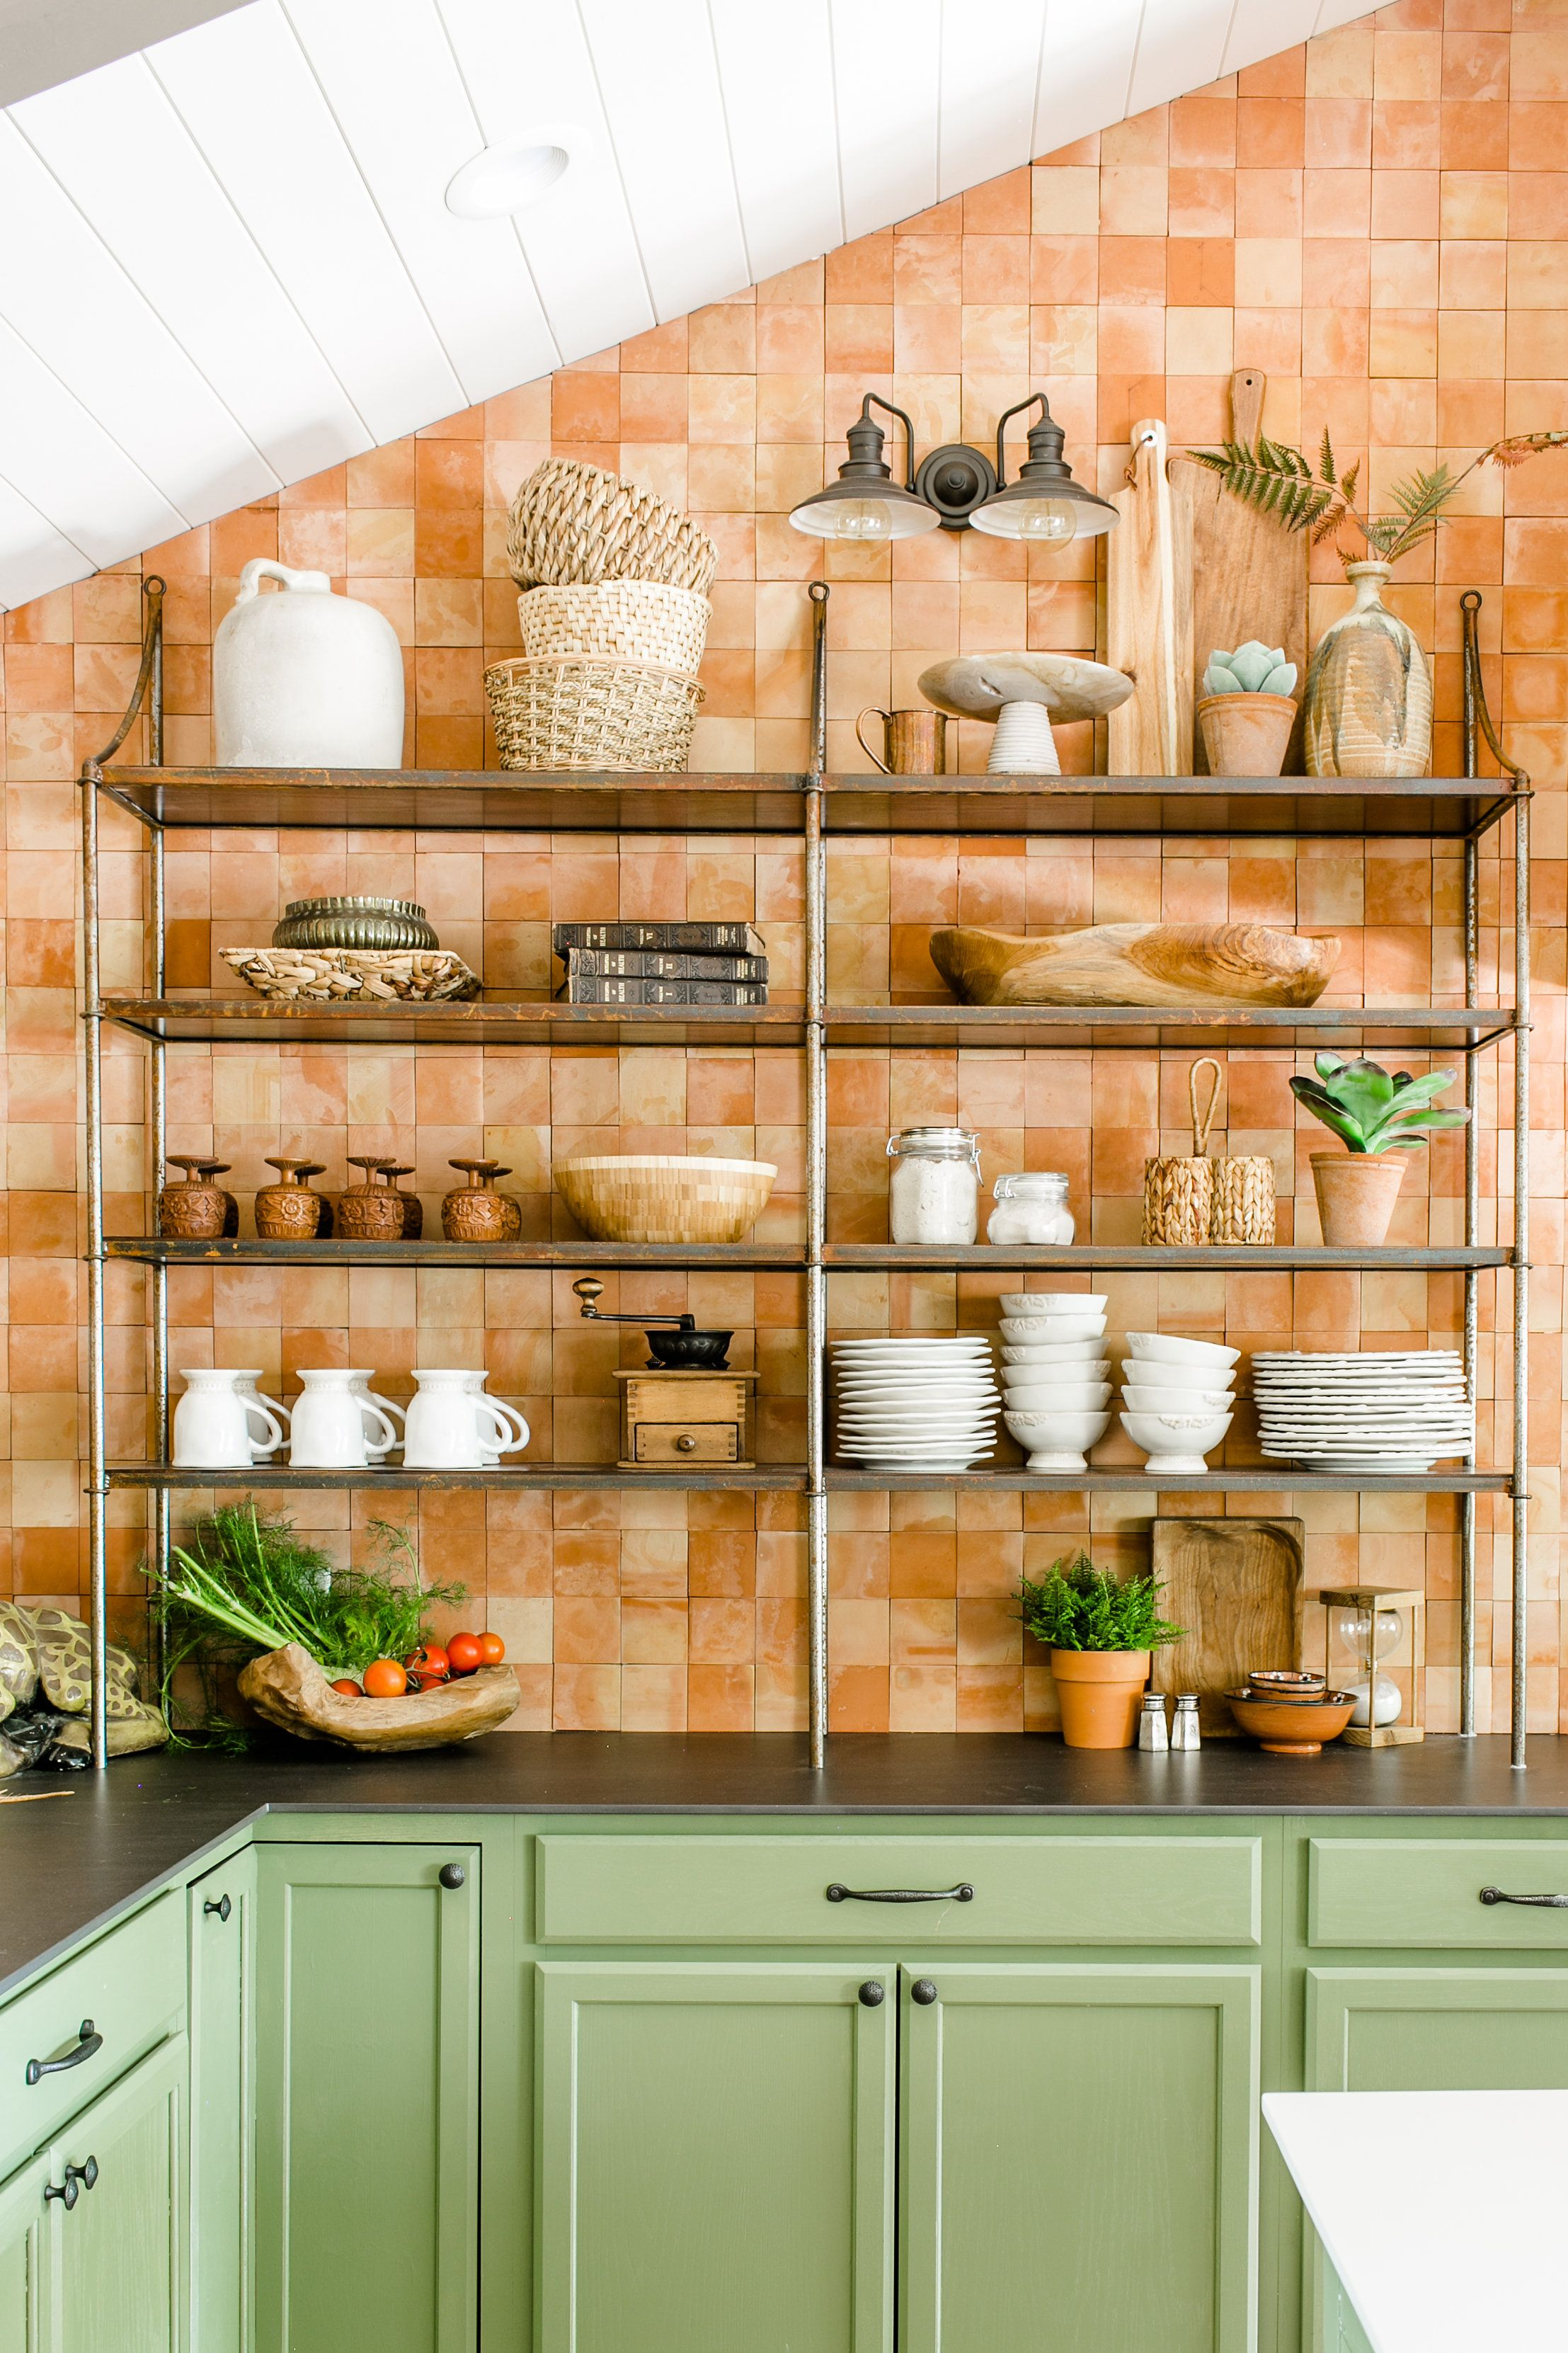 Country, Collected Kitchen By Claire Brody